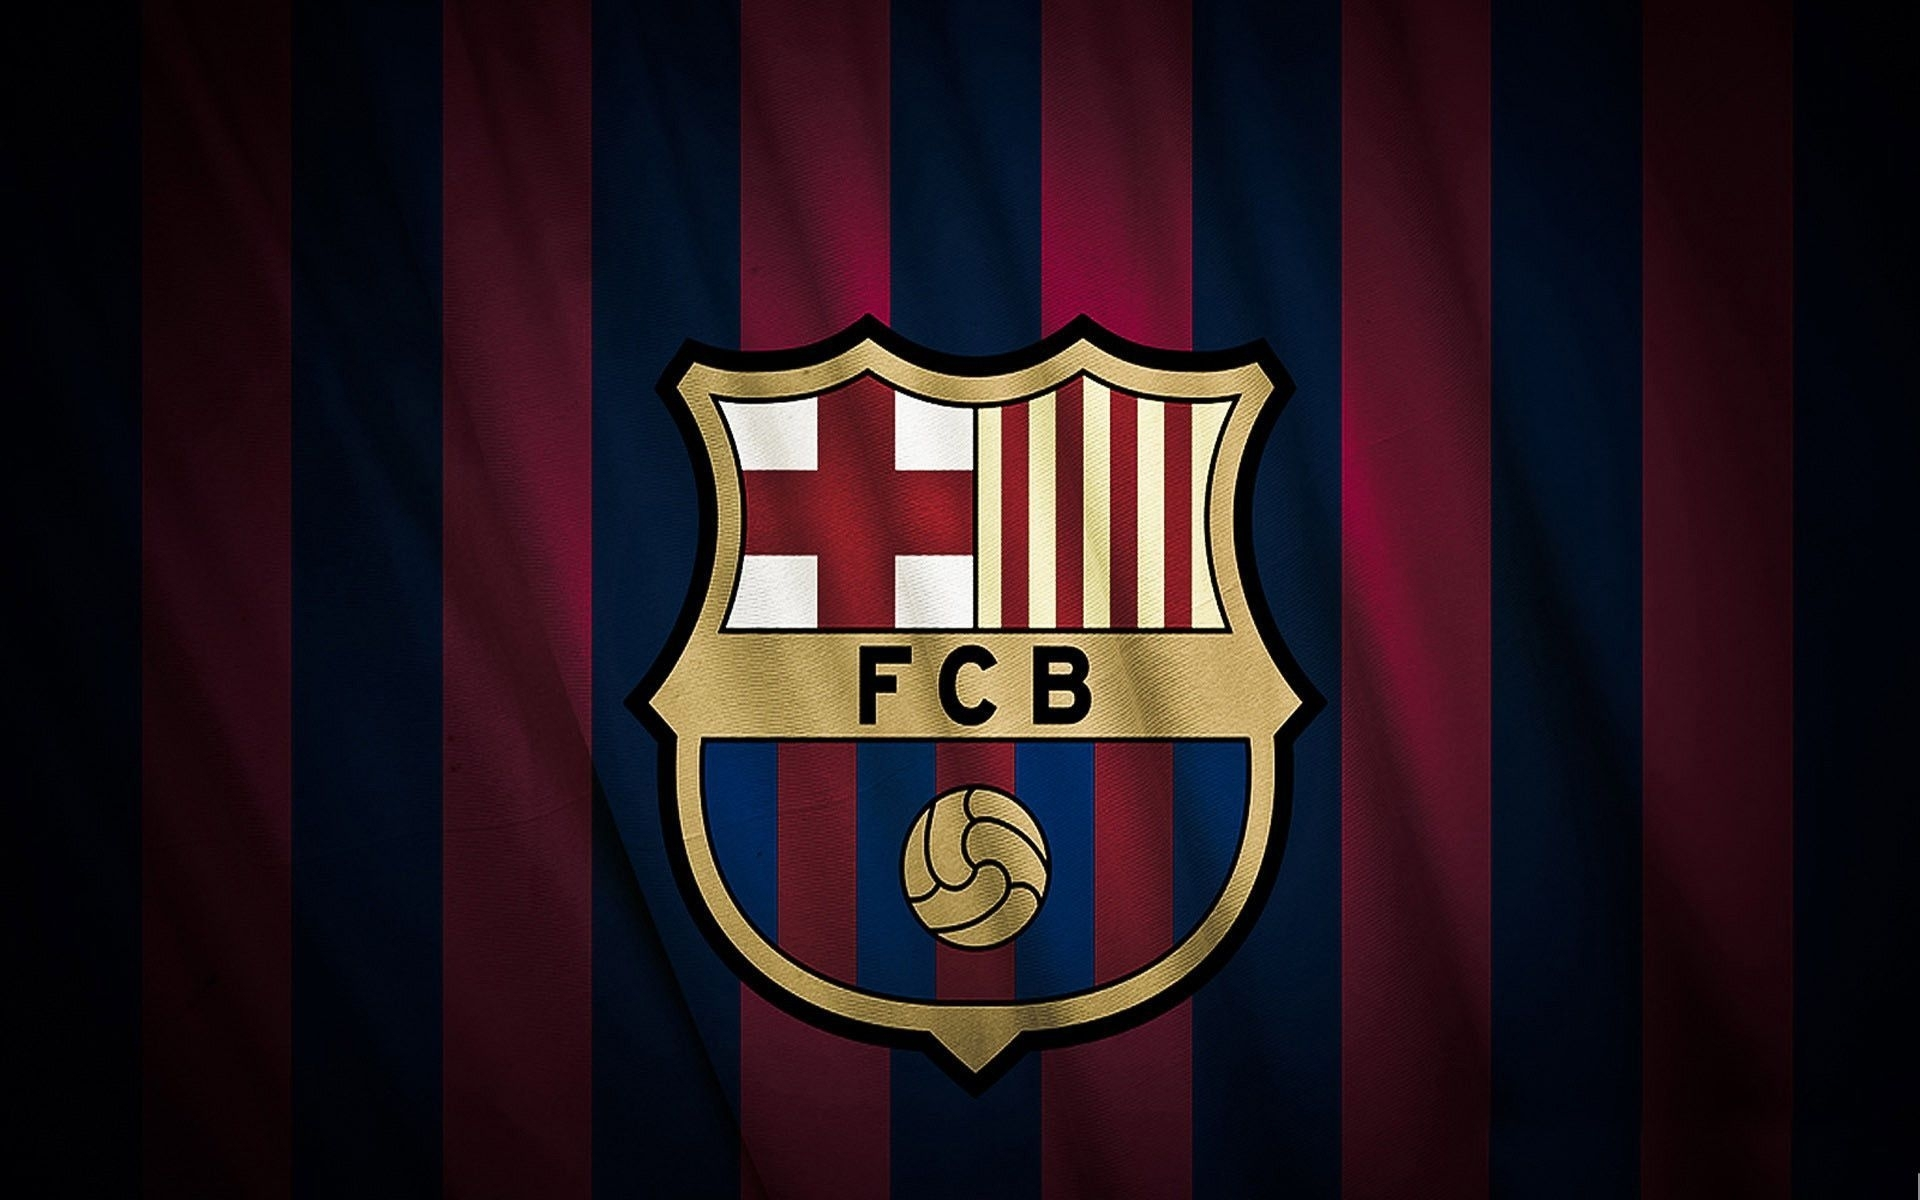 fc barcelona logo 2014 wallpaper wide or hd | sports wallpapers